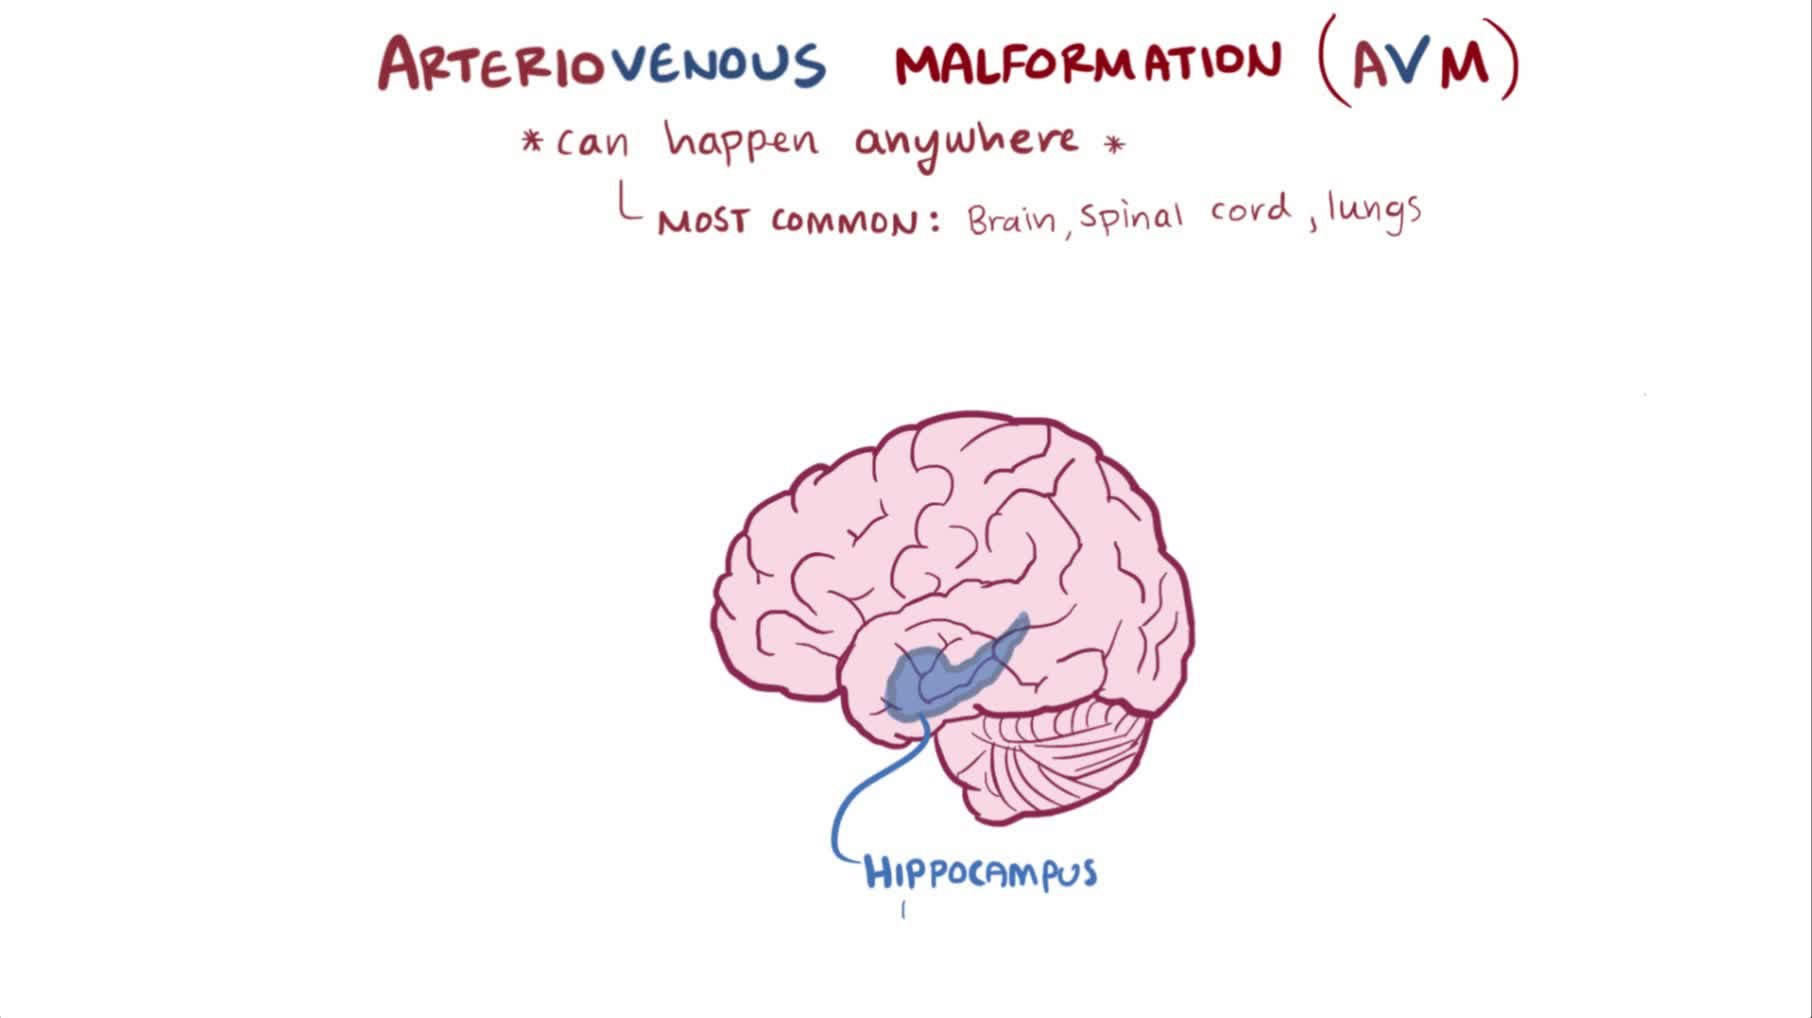 File:Arteriovenous malformation video.webm - Wikimedia Commons